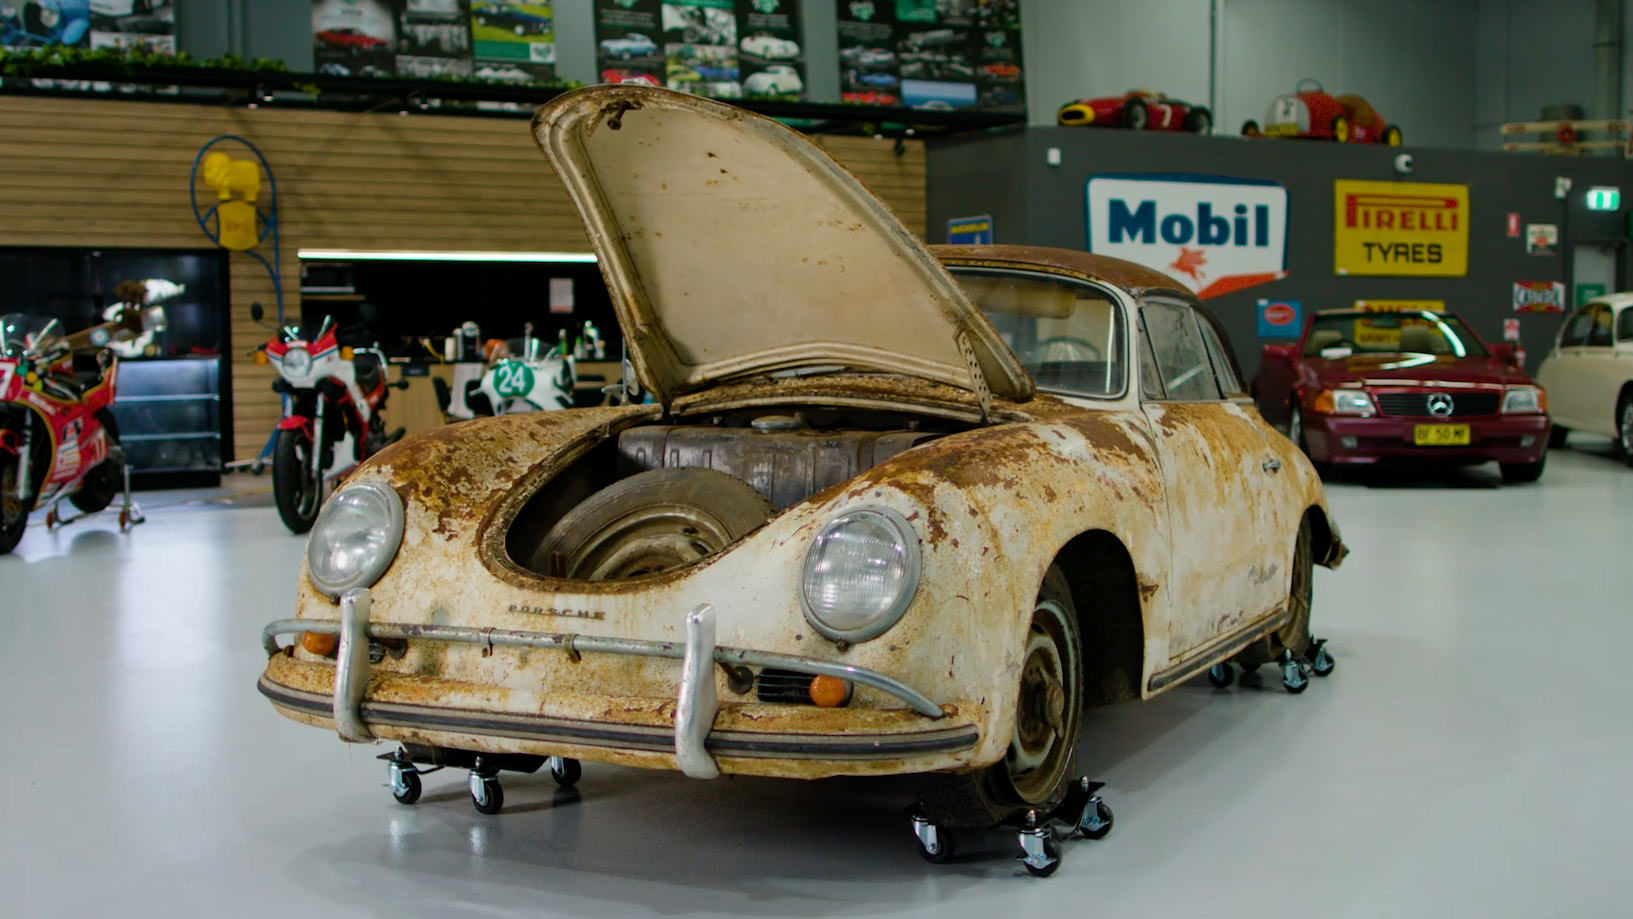 1958 Porsche 356A Super 1600 Cabriolet (Project) - 2021 Shannons Summer Timed Online Auction